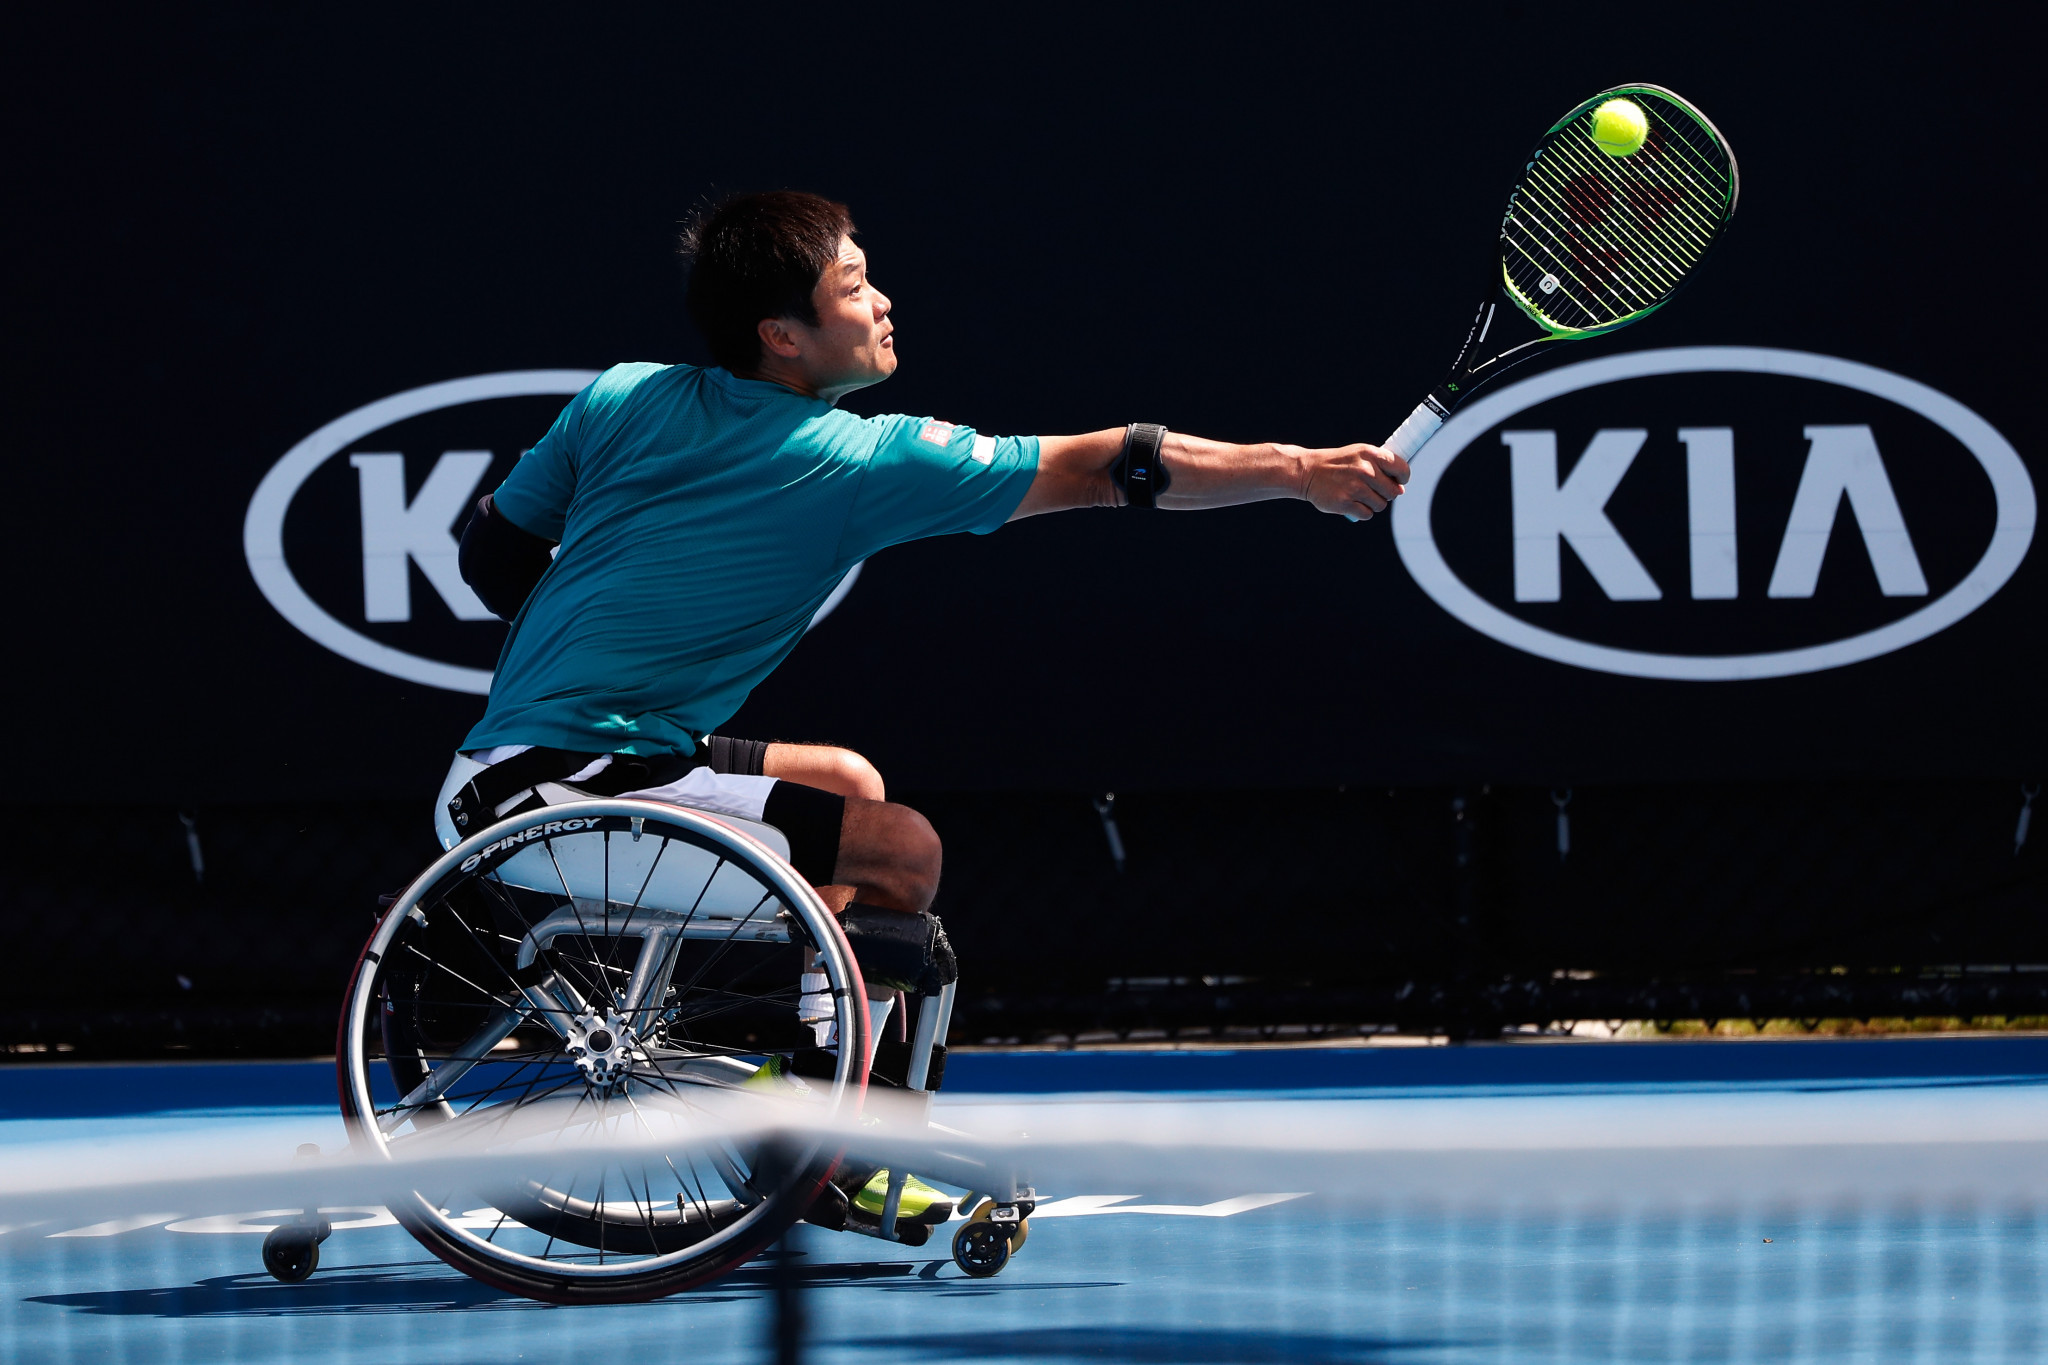 Defending champion Shingo Kunieda of Japan beat Britain's Alfie Hewett in his opening match of the Australian Open wheelchair competition ©Getty Images